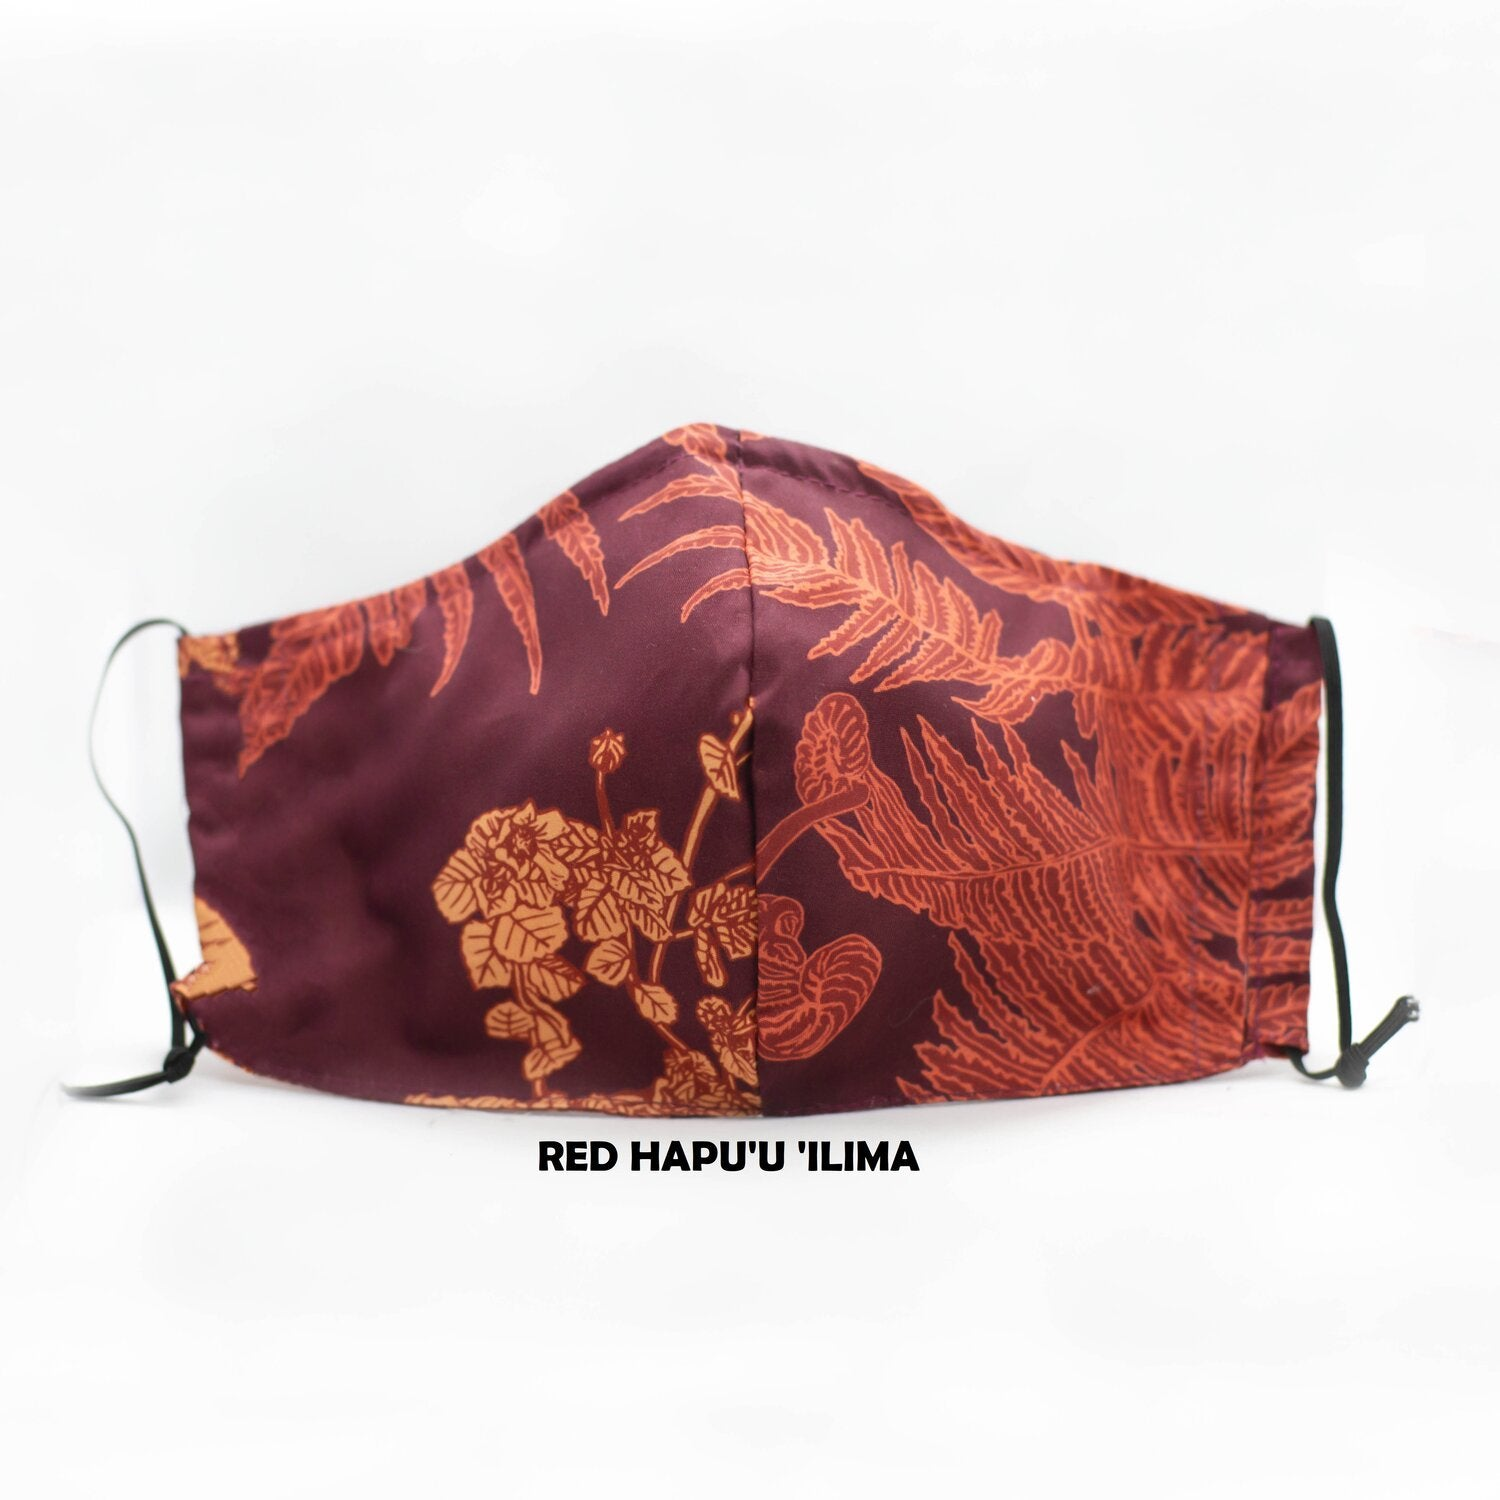 Hapuu Ilima Red Face Mask